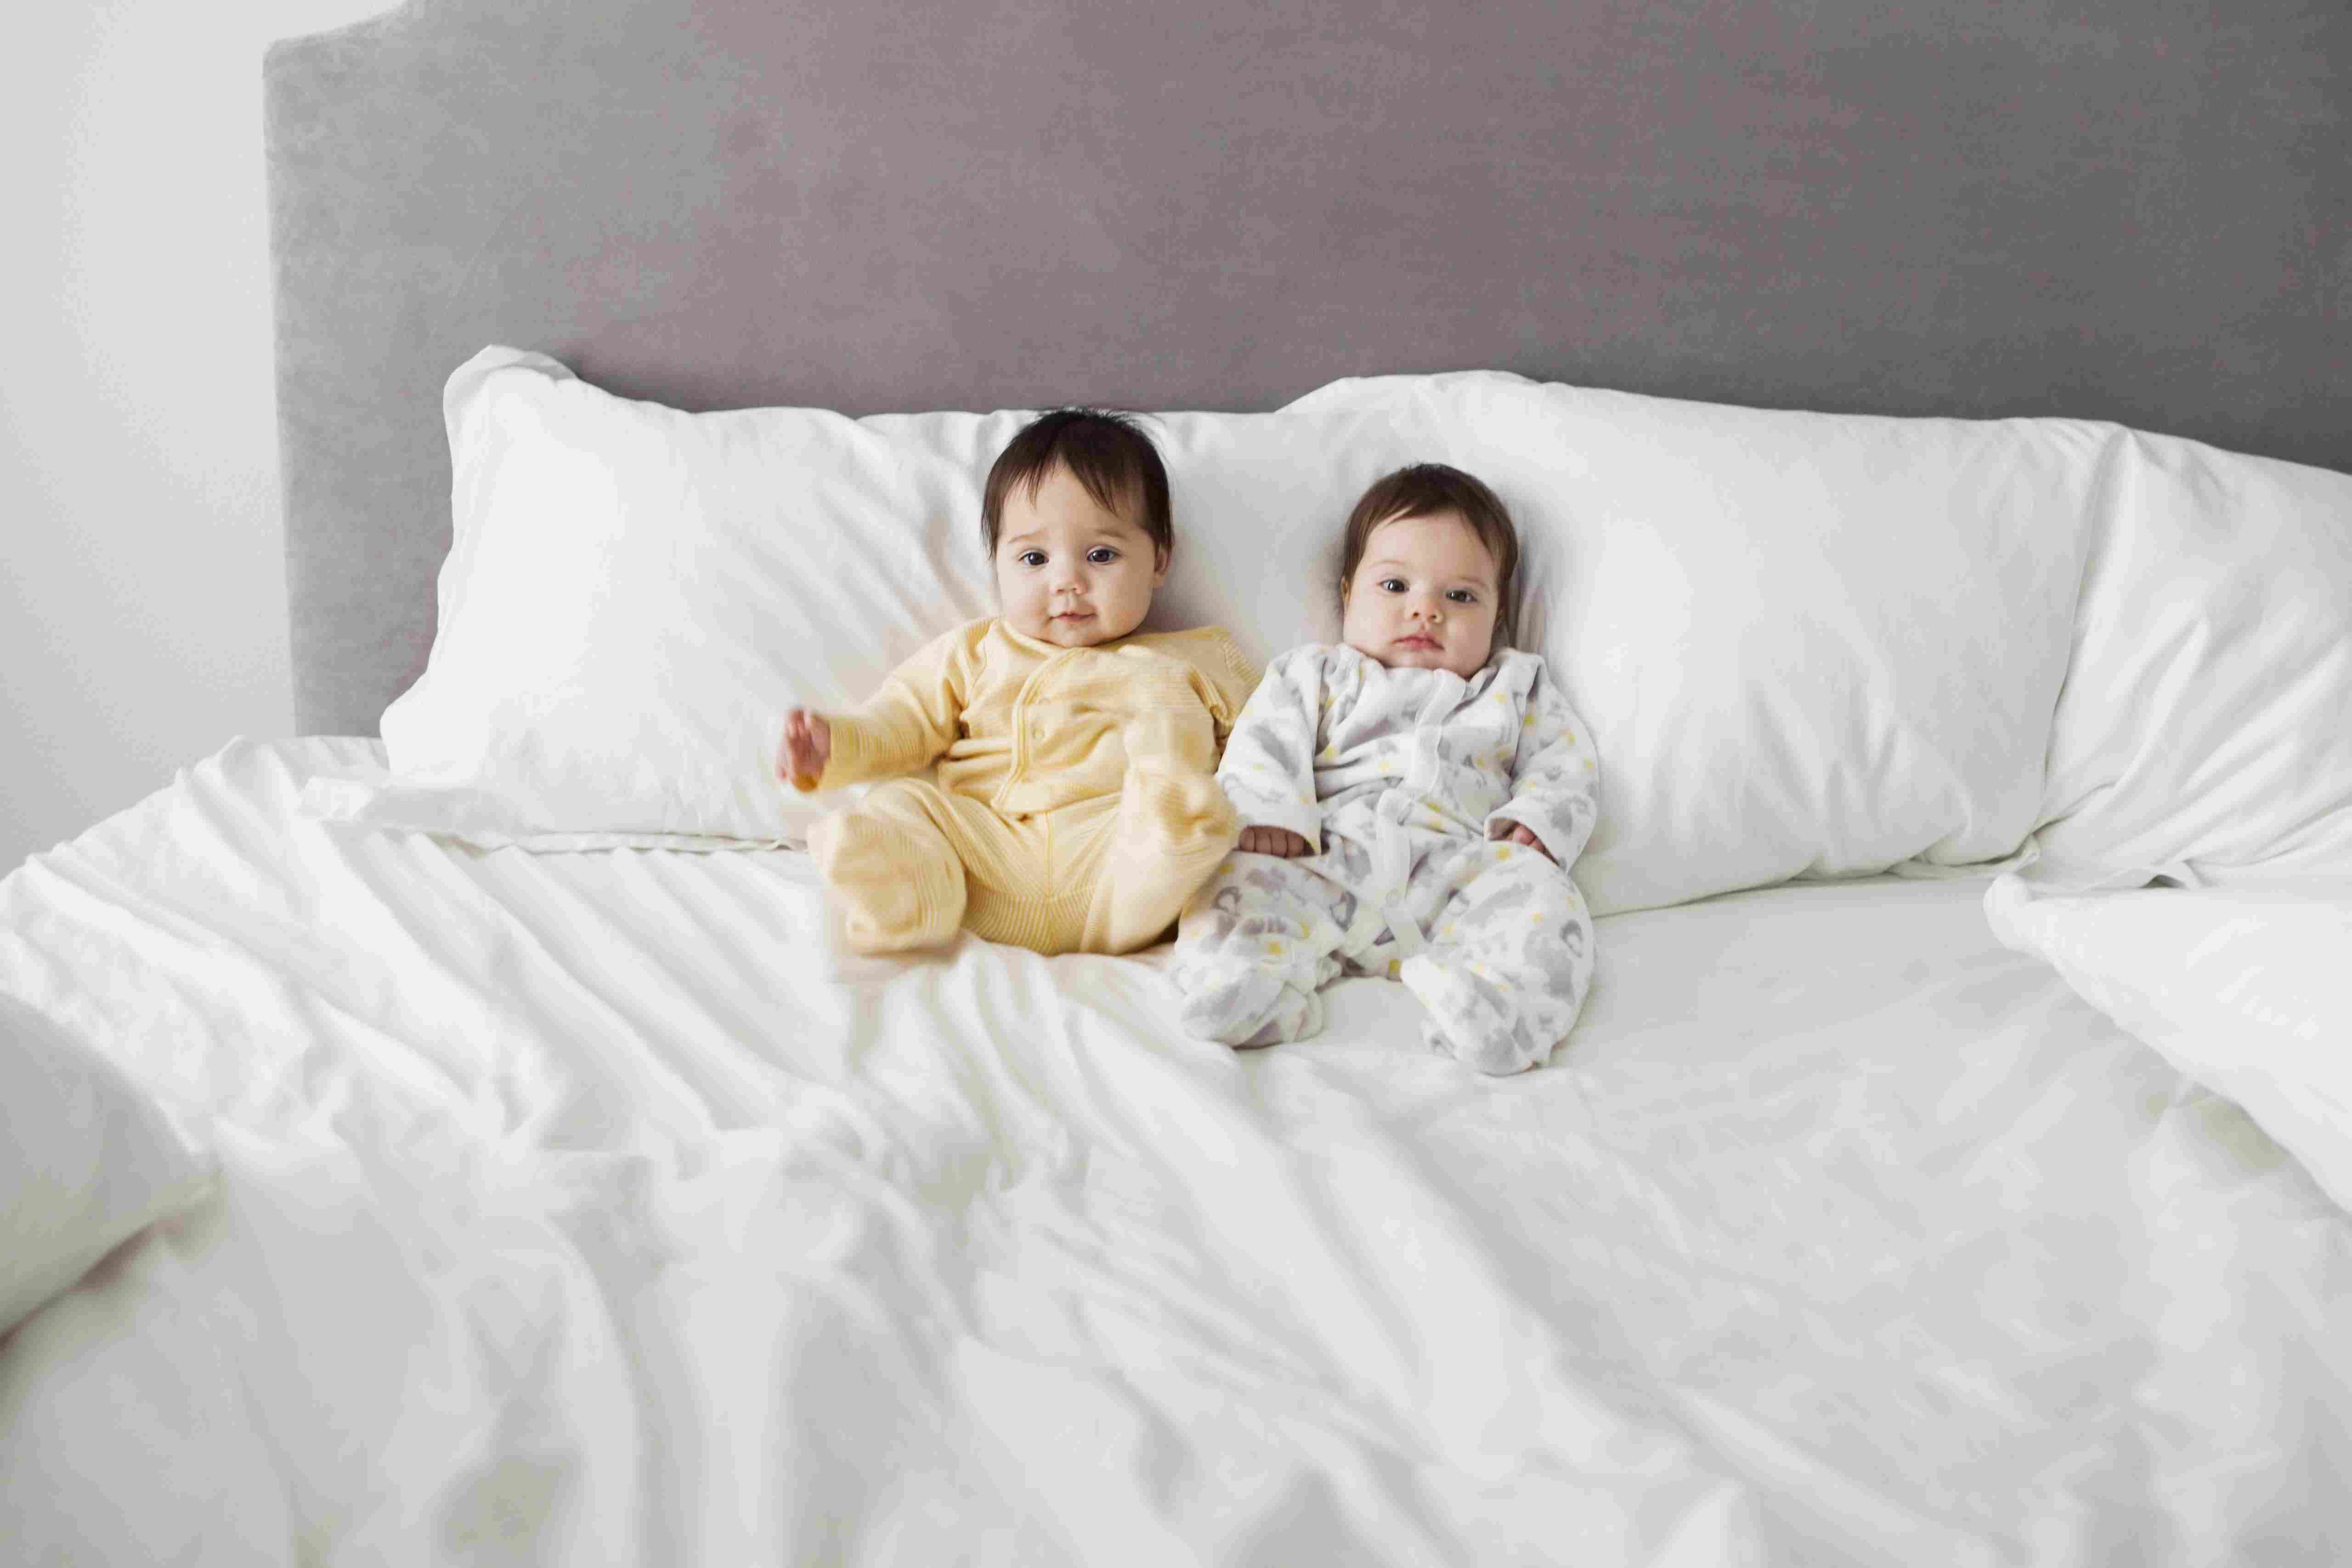 15 Sets of Spanish Baby Names for Twins